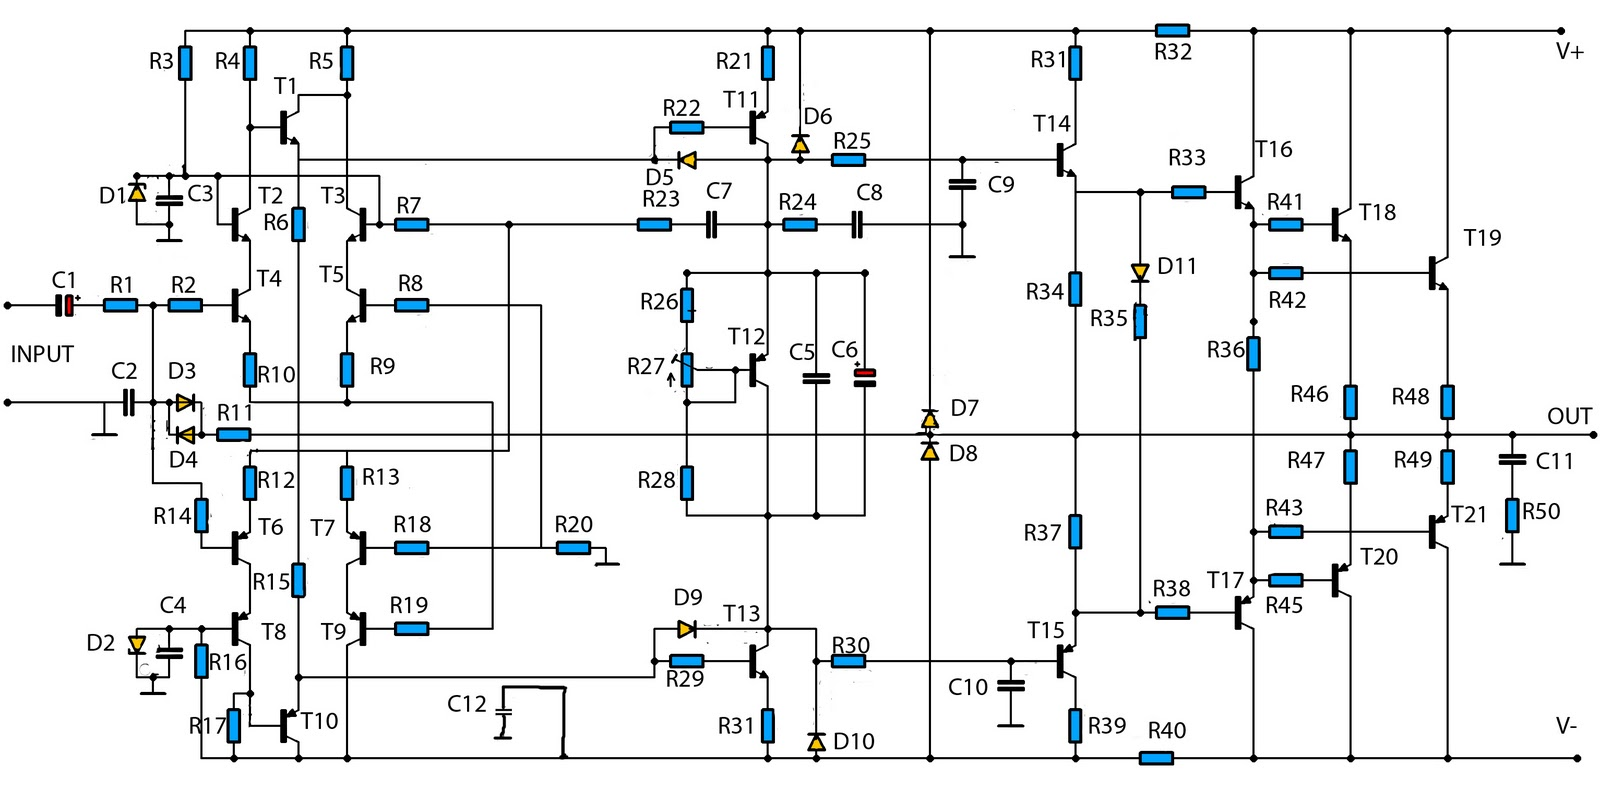 November 2012 The Circuit 1 Powersupplycircuit Diagram Seekiccom Schematic